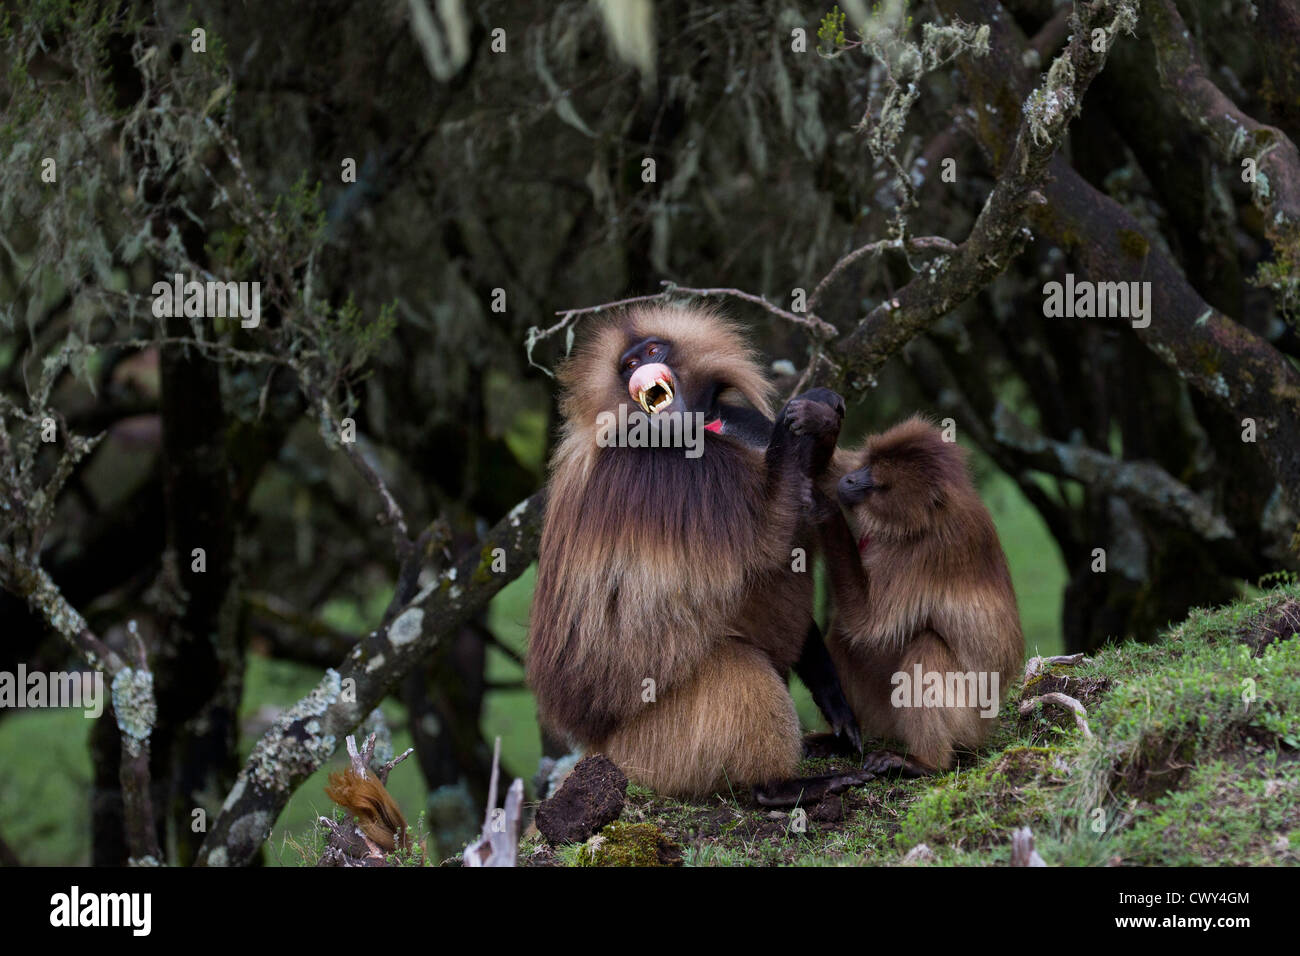 Male Gelada baboon (Theropithecus gelada) showing sign of aggression while being groomed Simien National park Ethiopia. - Stock Image